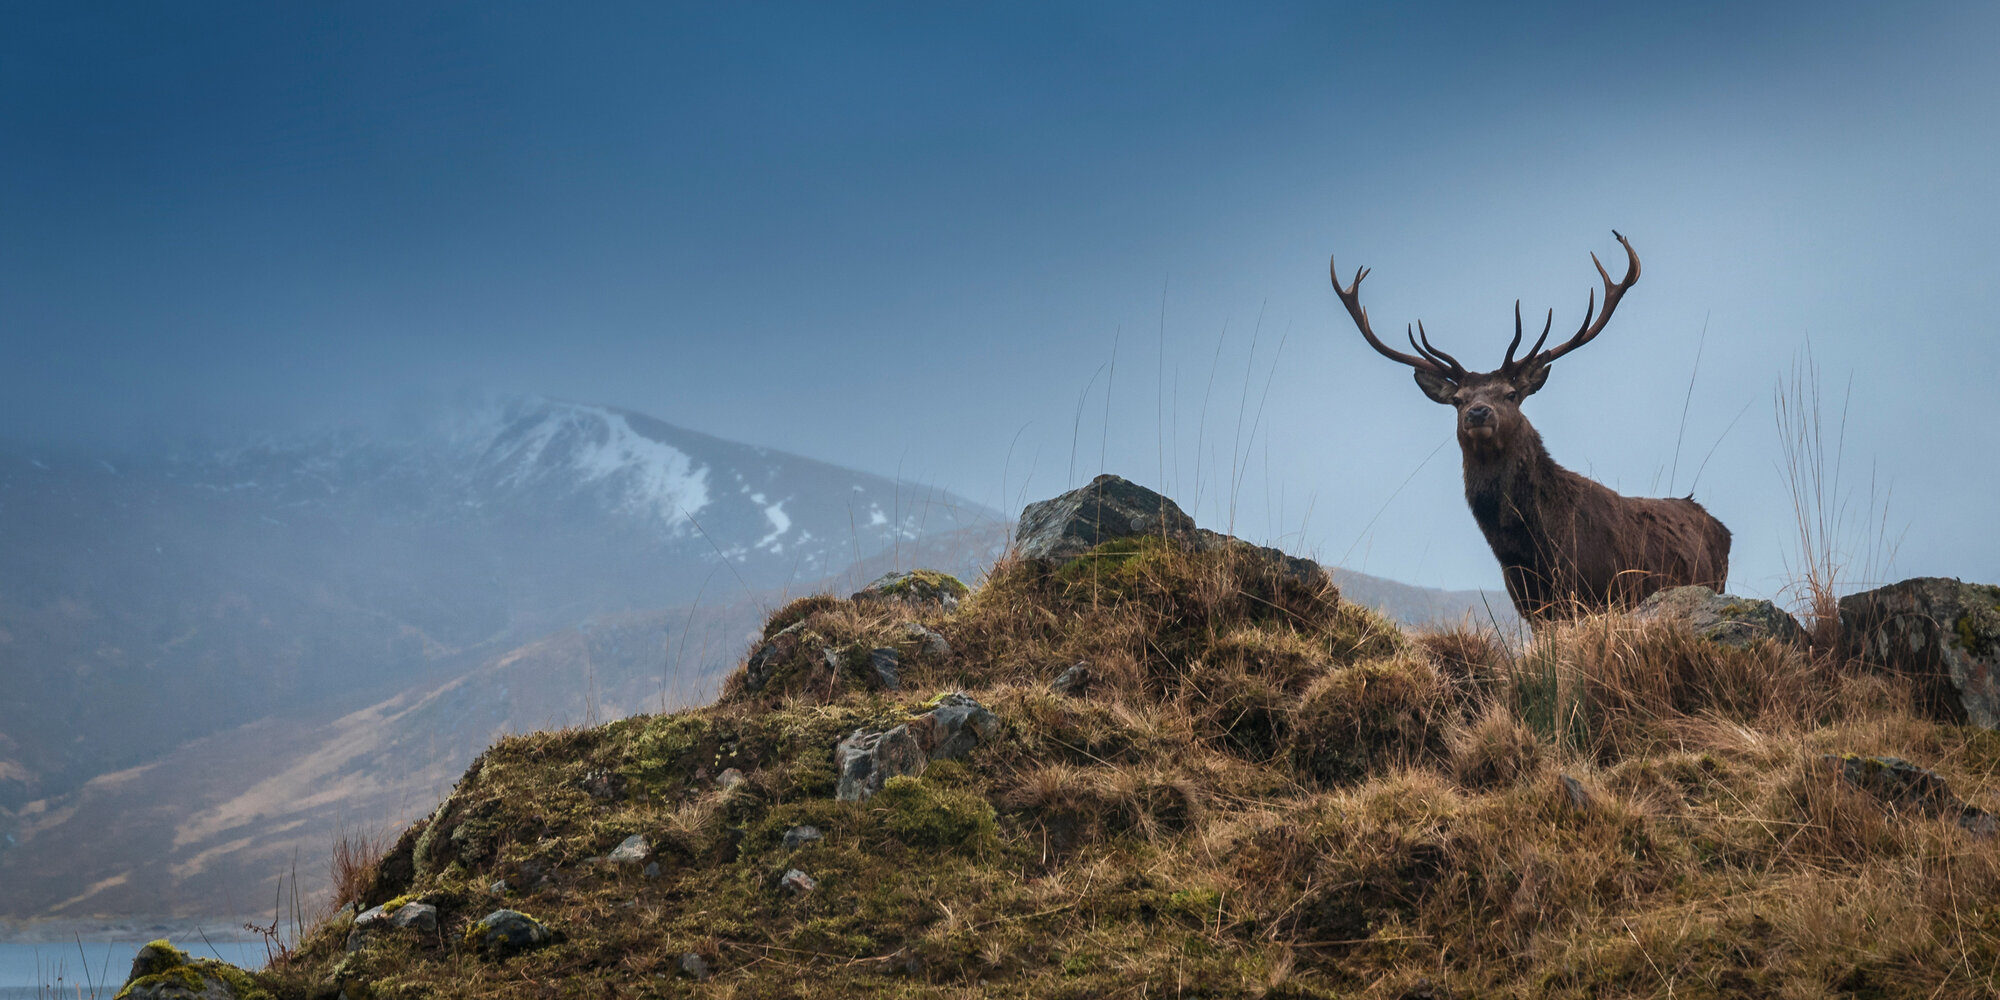 SVM highland stag standing on hill